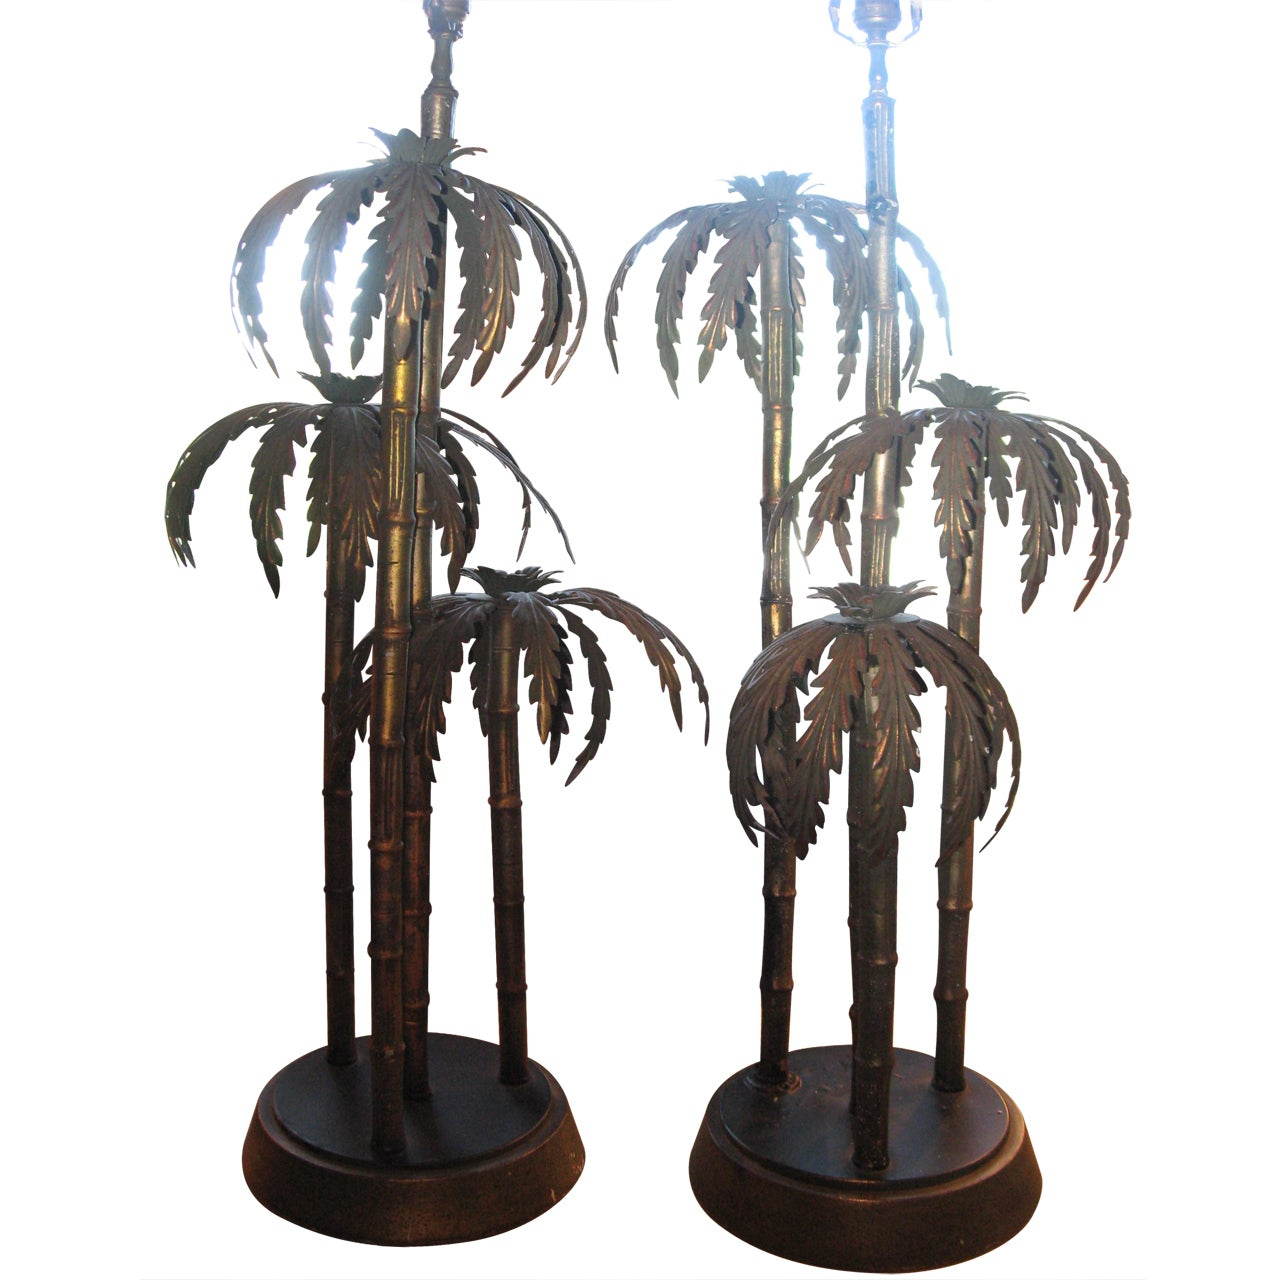 Midcentury Pair of Monumental Palm Tree Table Lamps